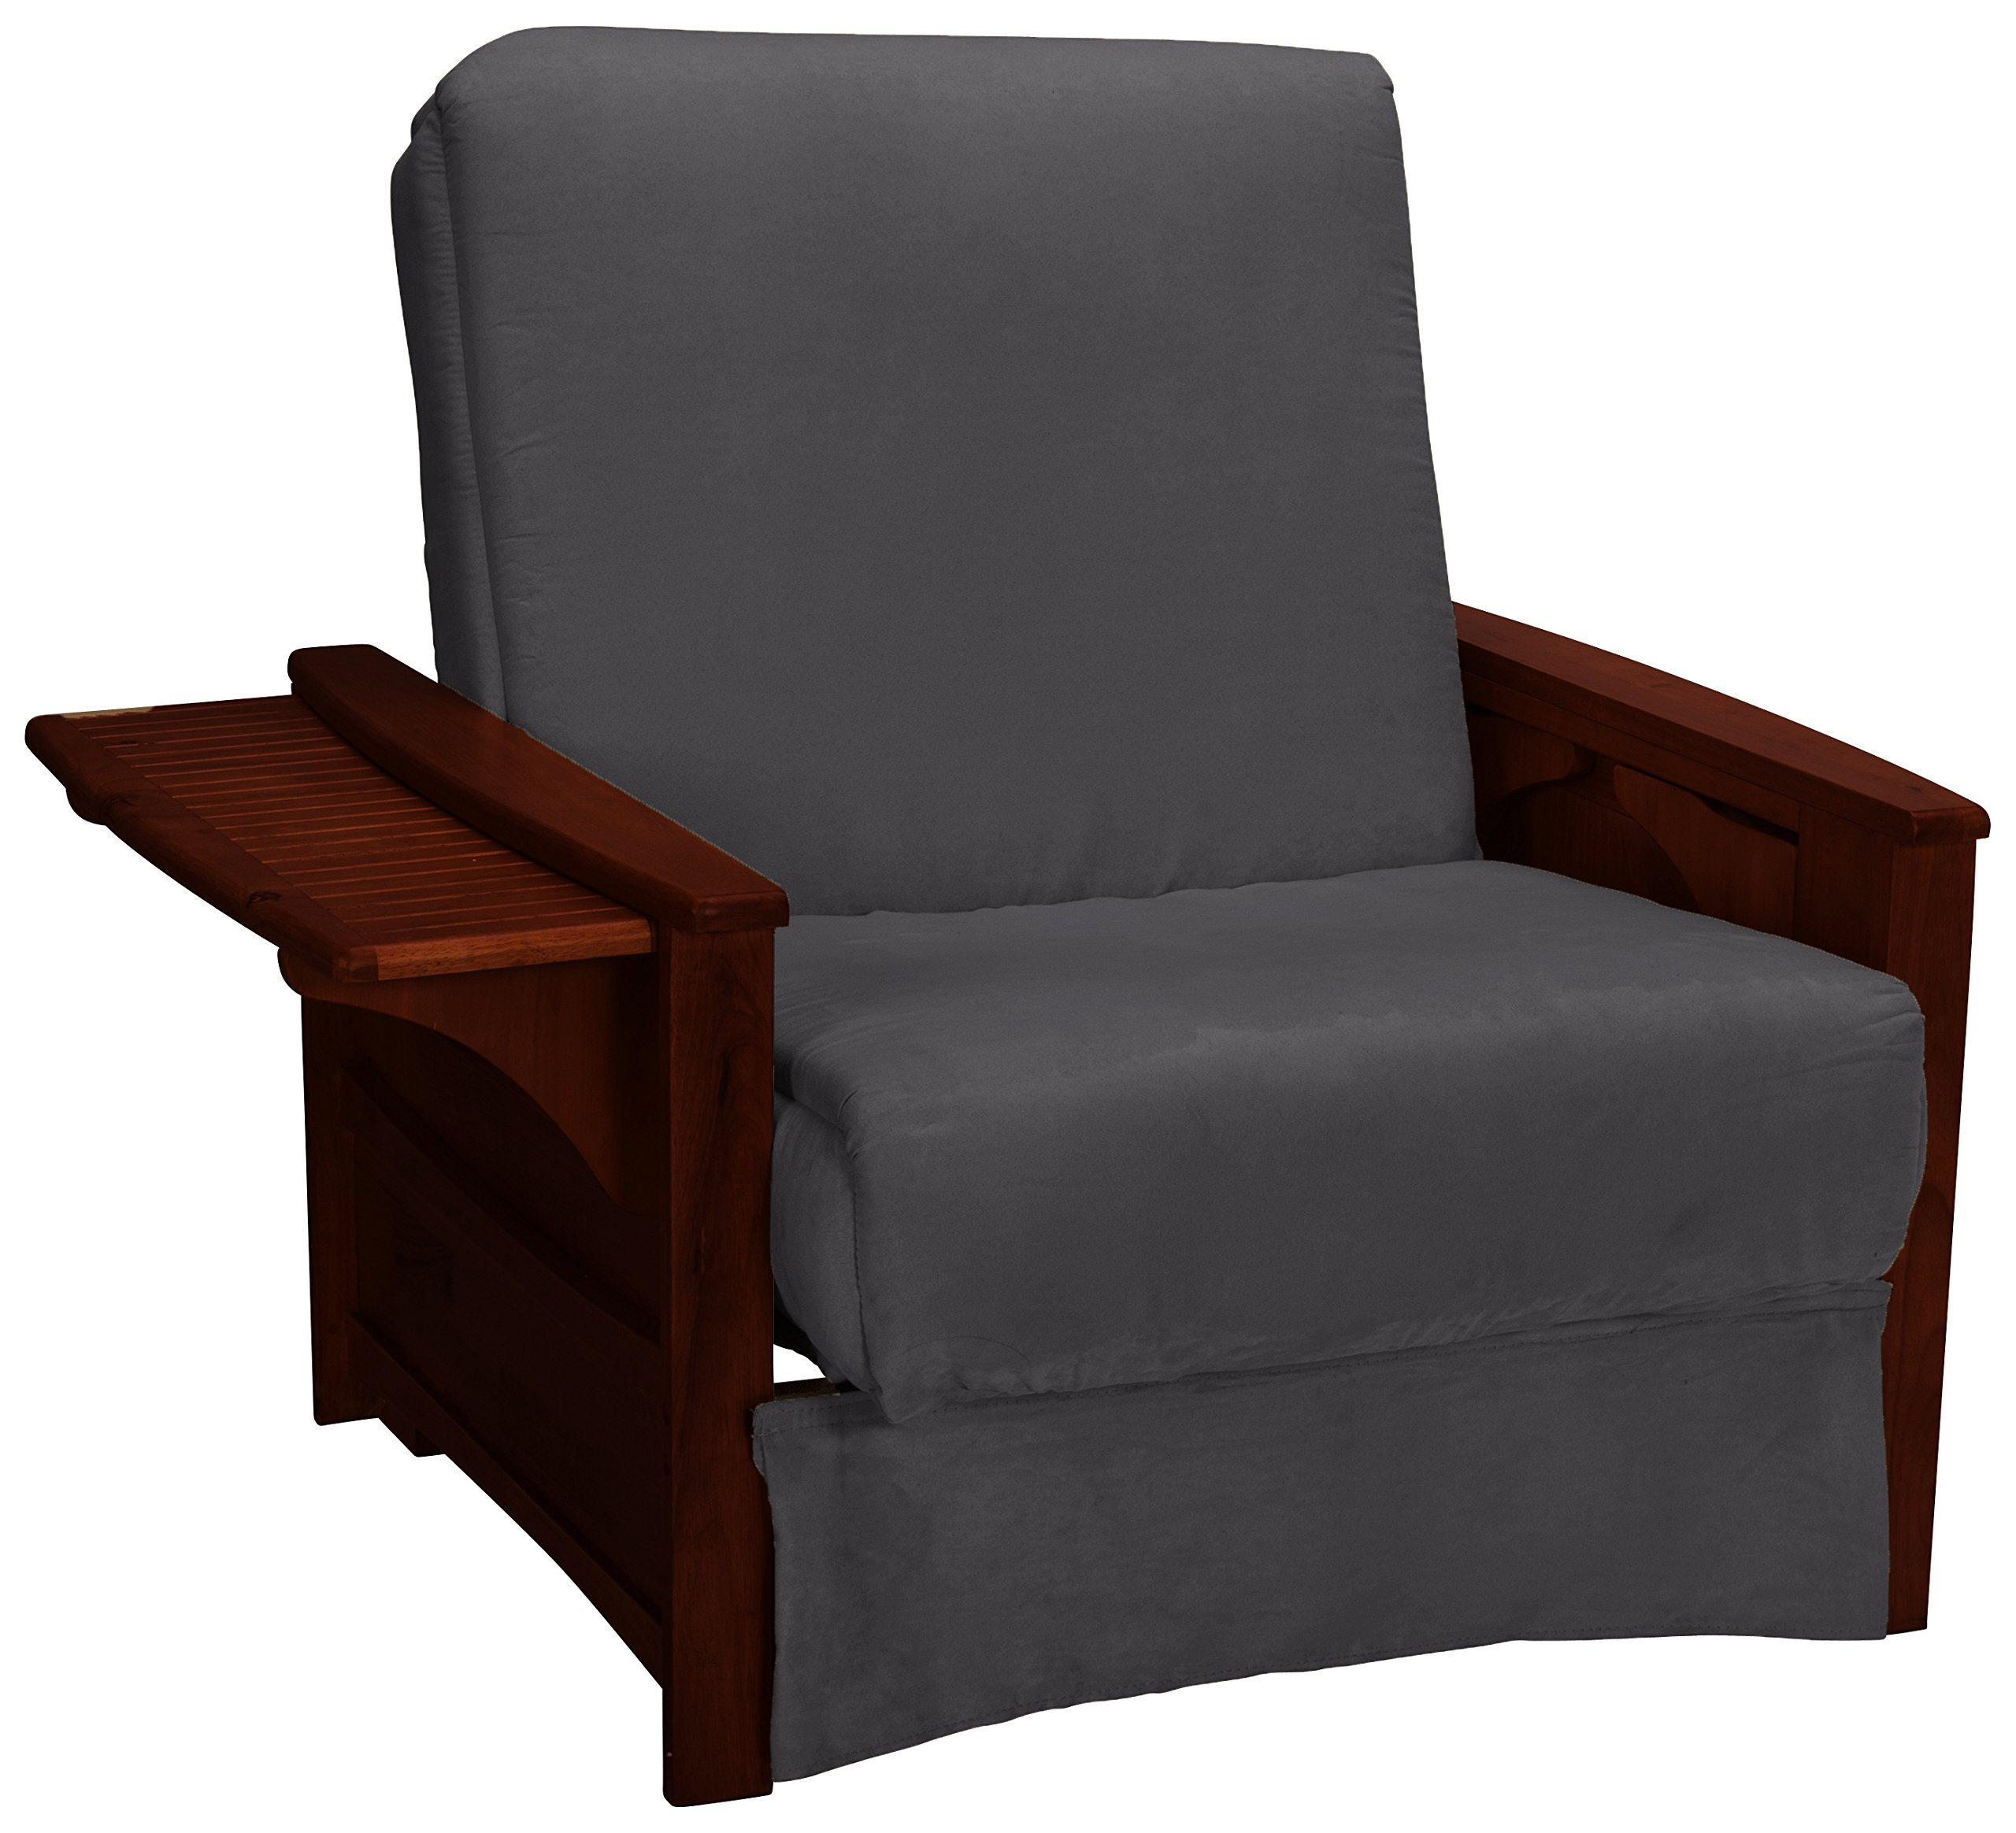 Valet Attached End Table Style Perfect Sit & Sleep Pocketed Coil Inner Spring Pillow Top Child-size Bed, Chair, Mahogany Finish, Microfiber Suede Slate Grey Upholstery